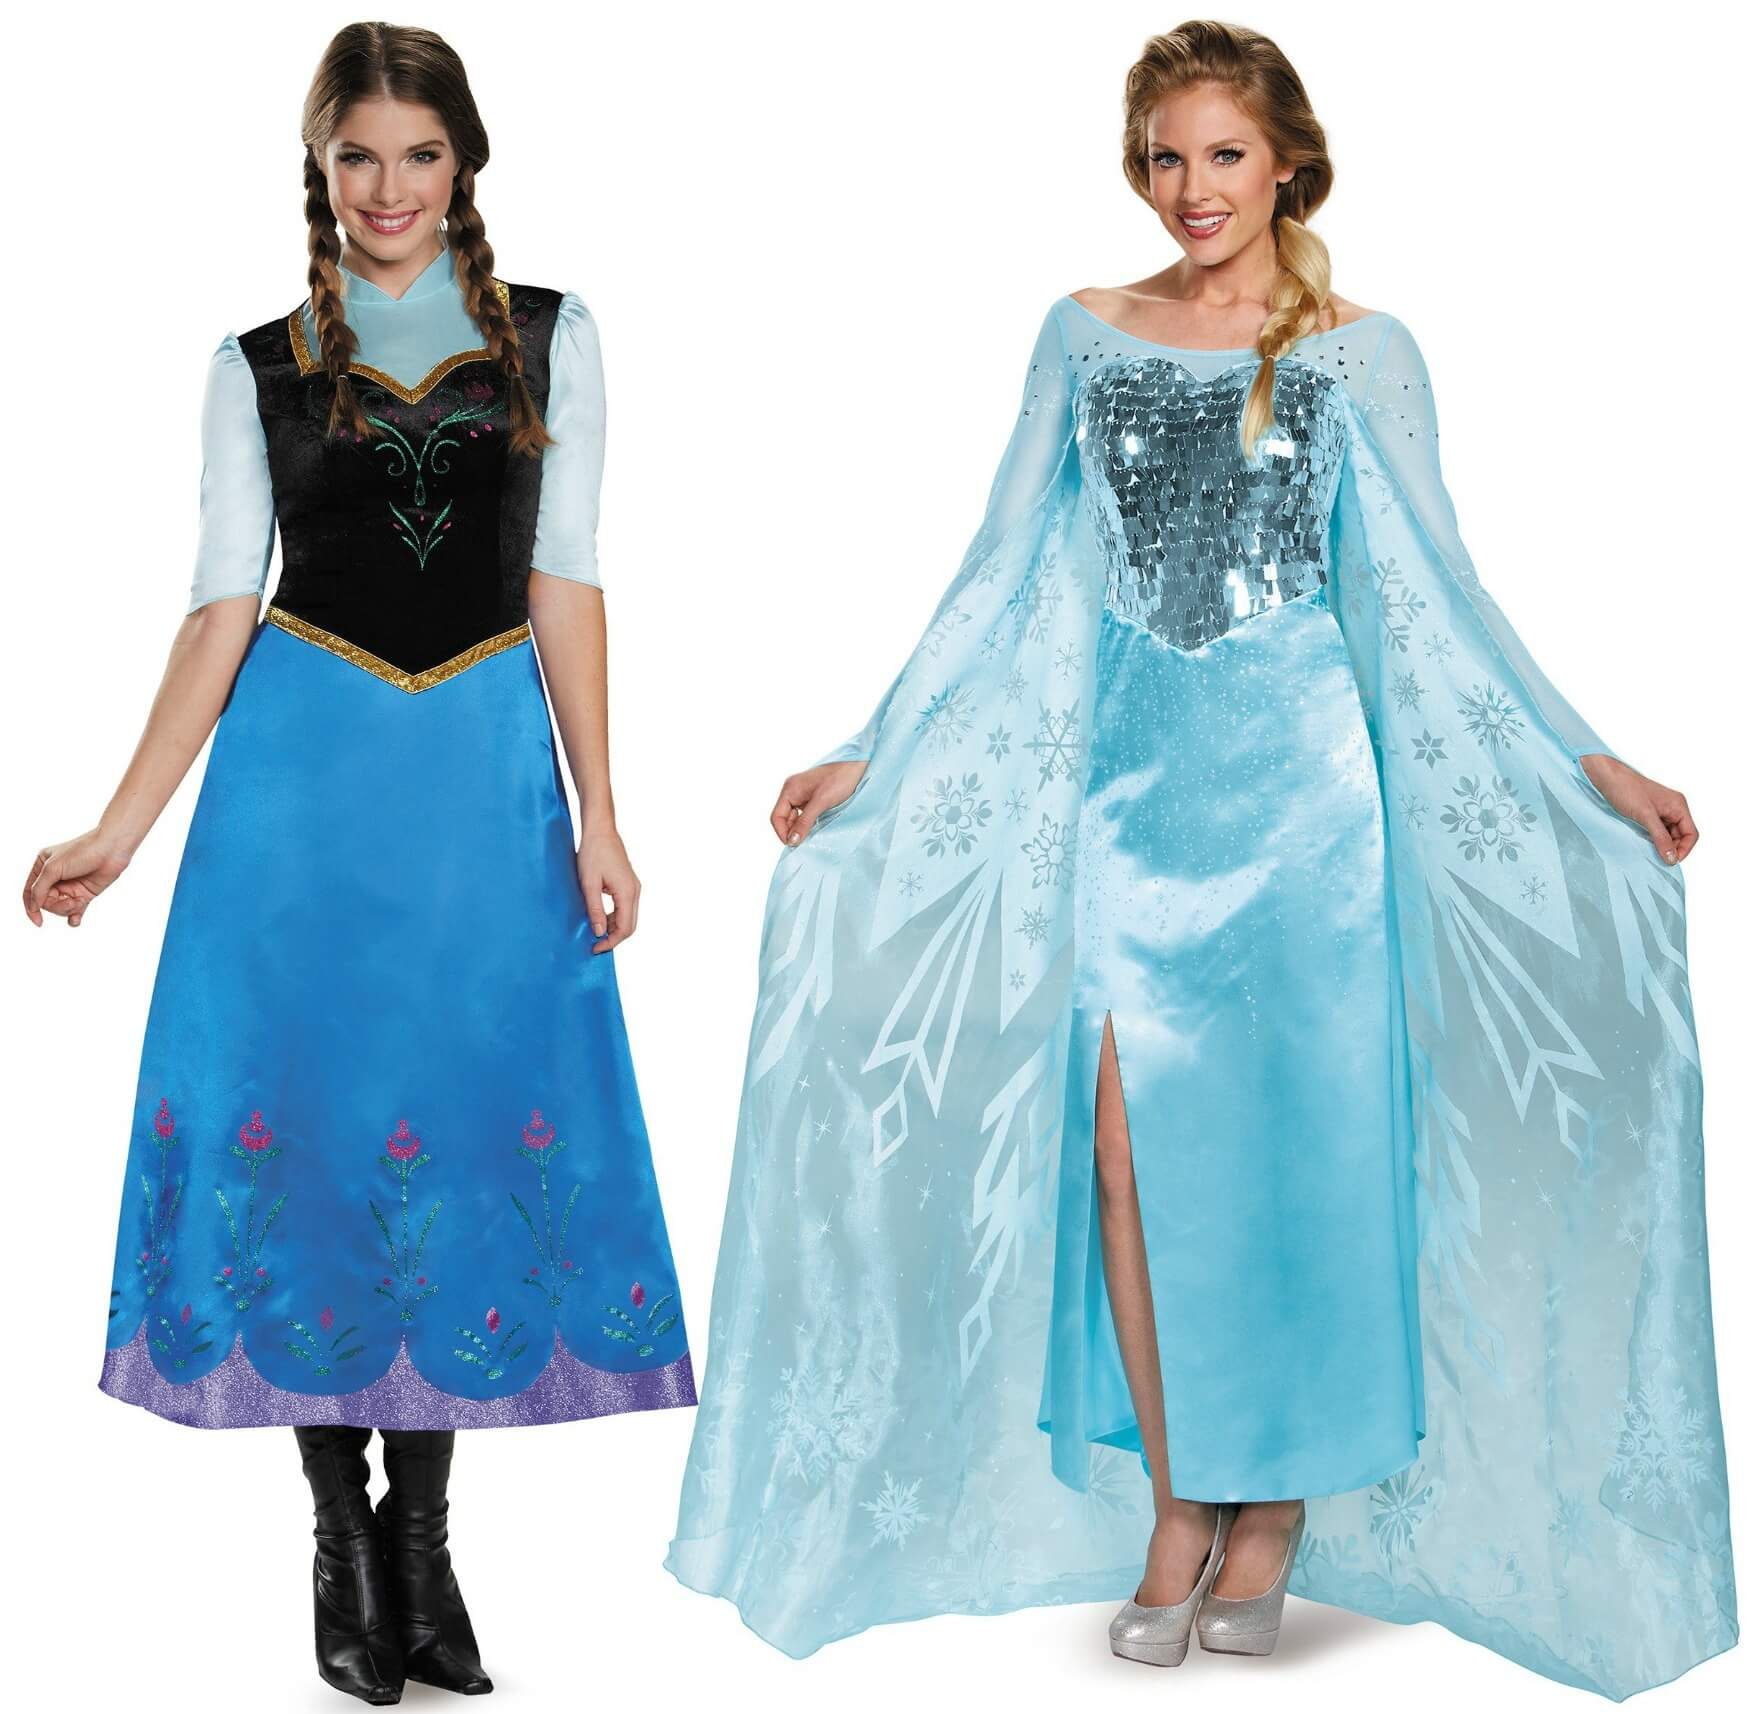 anna-and-elsa-bff-costumes